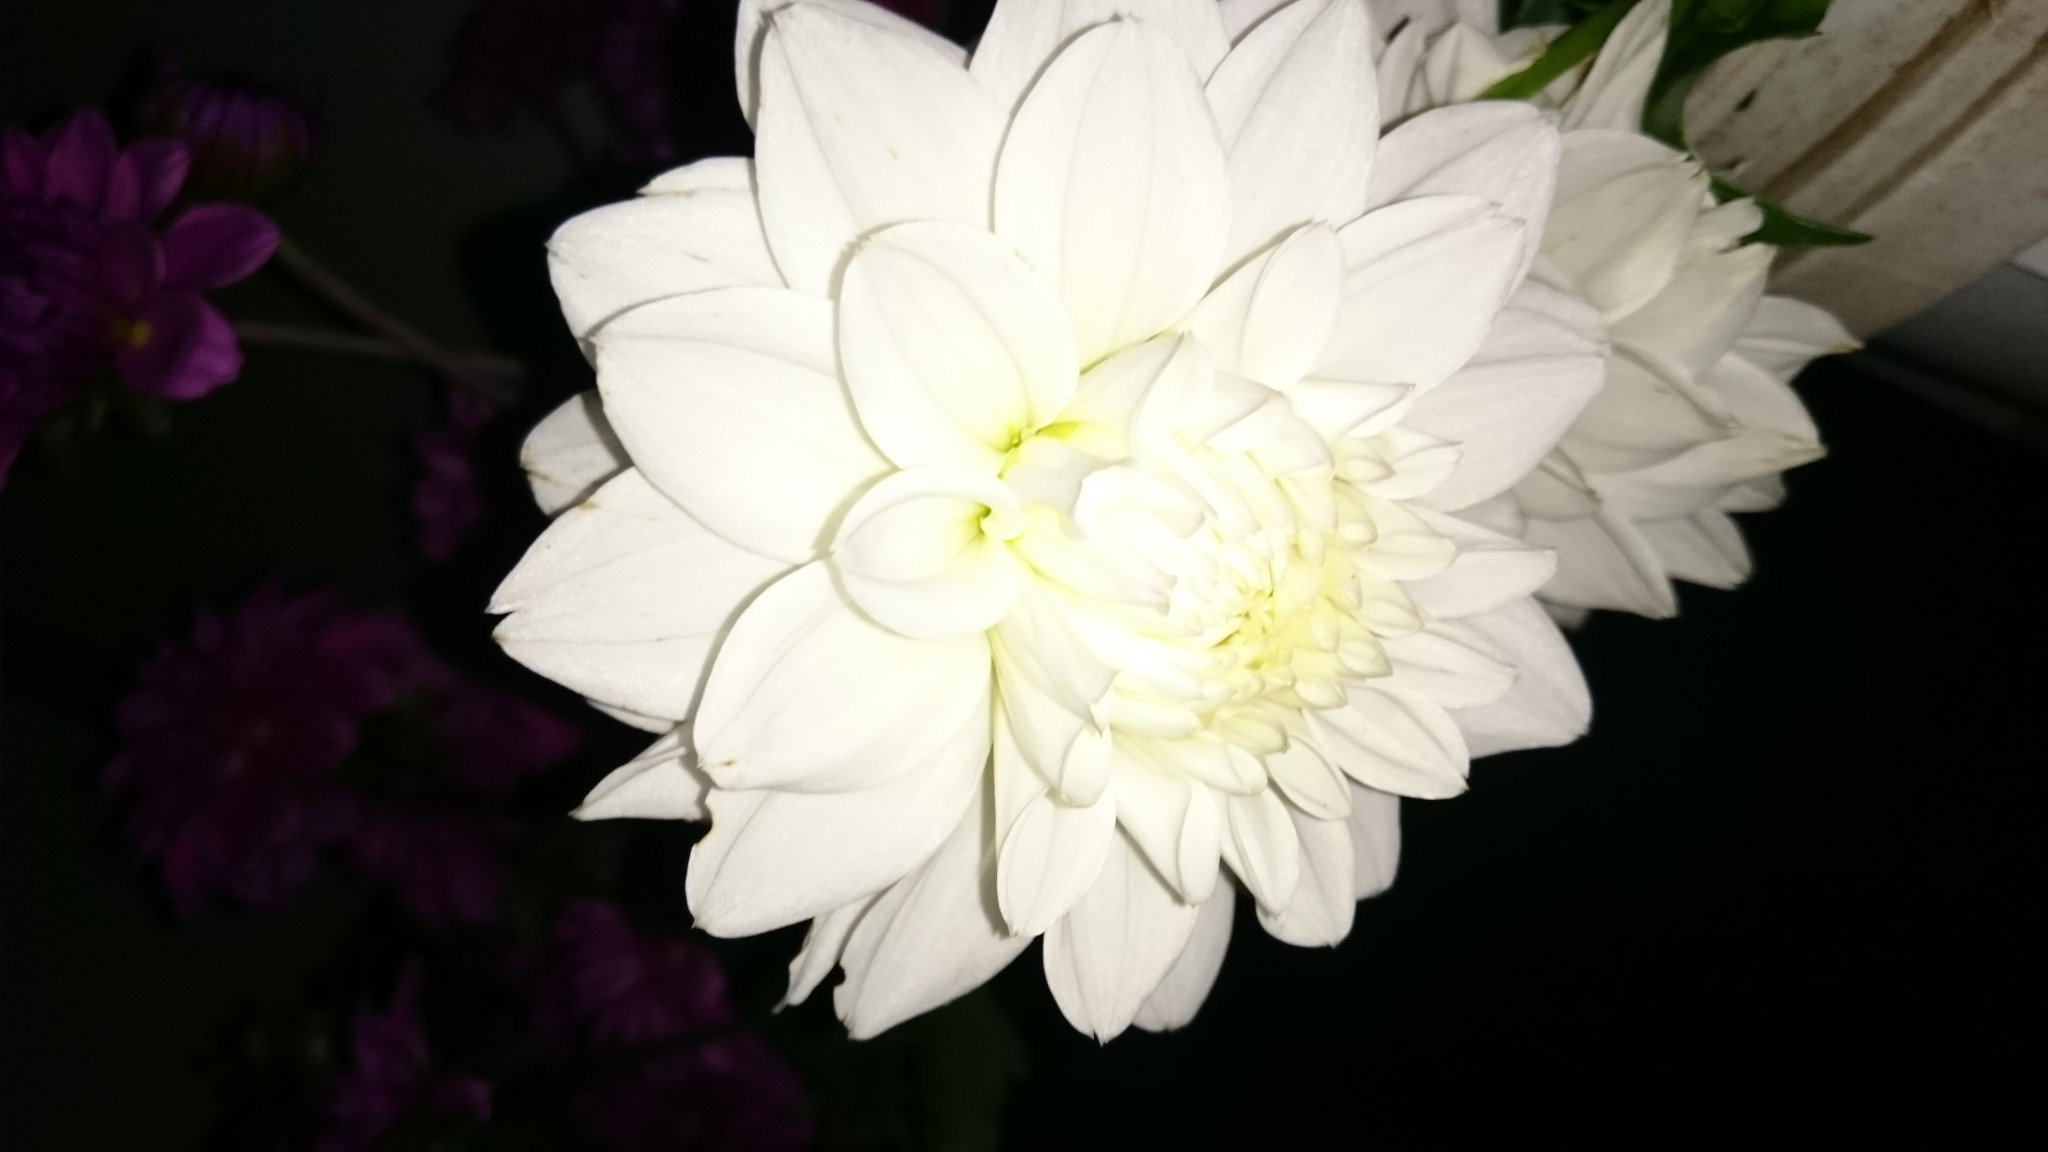 Dahlia White: semi open average 10cm head